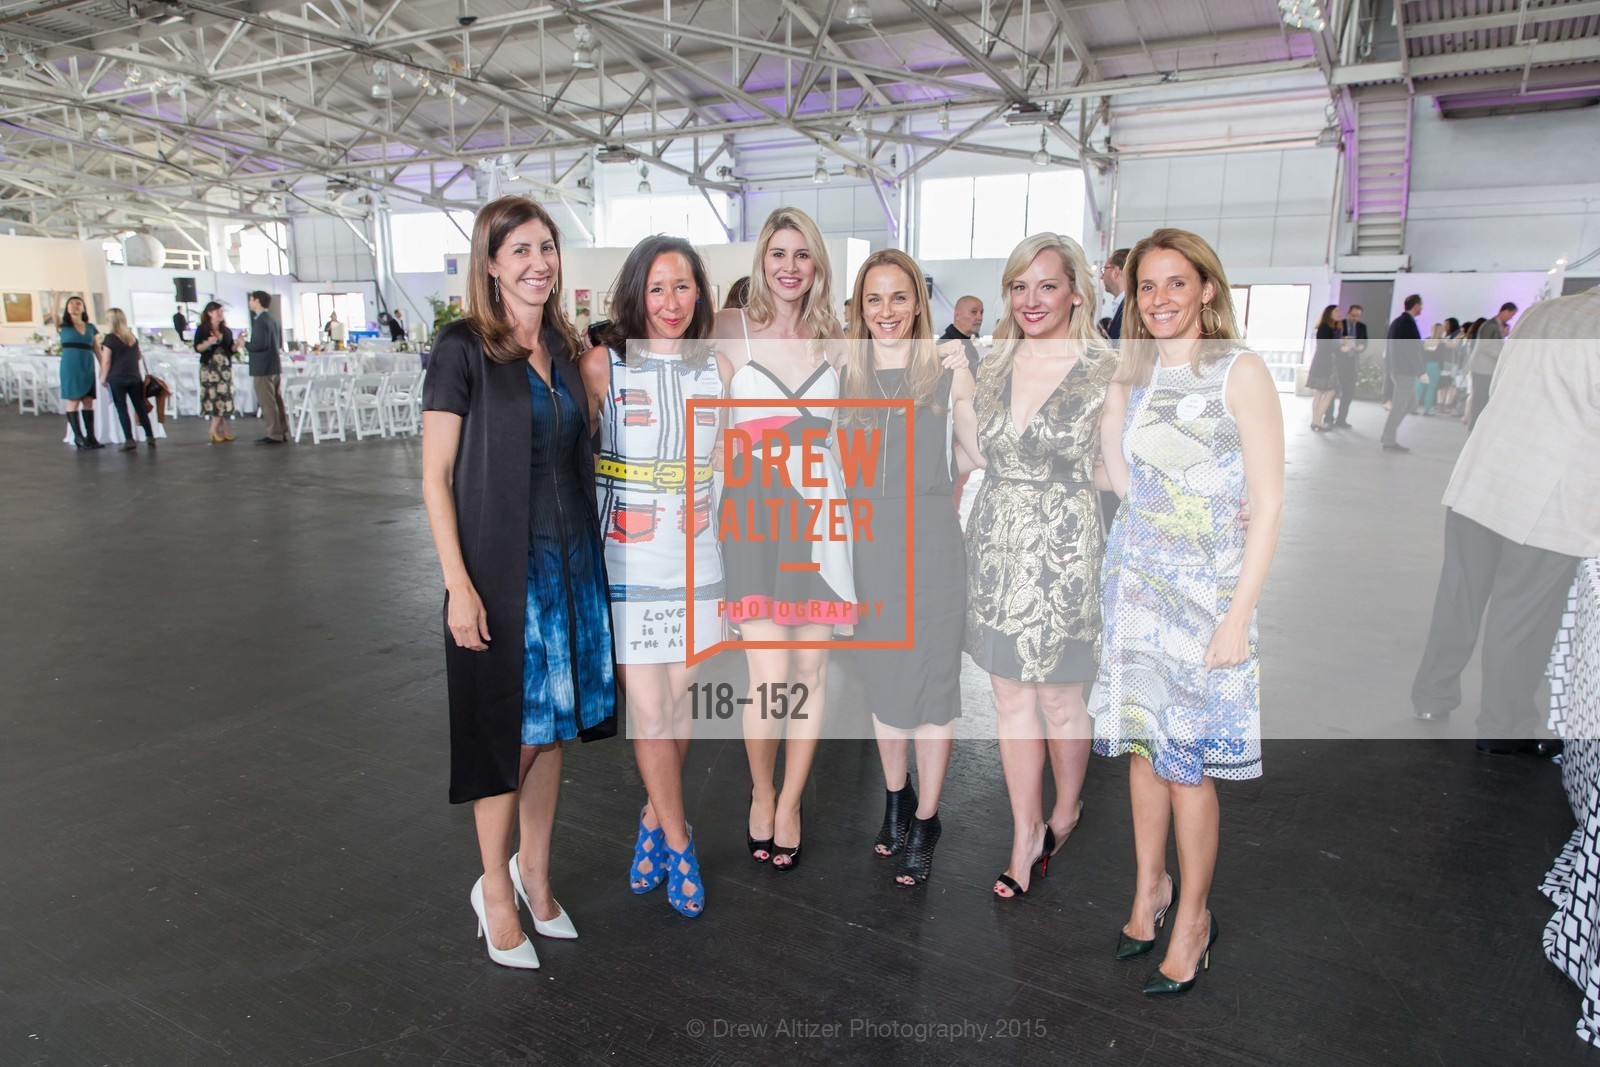 Kingsley Hudson Wiley, Dee Dozier, Stephanie Breitbard, Evie Simon, Headlands Center for the Arts Benefit Auction, Fort Mason Festival, Pavilon, June 2nd, 2015,Drew Altizer, Drew Altizer Photography, full-service agency, private events, San Francisco photographer, photographer california